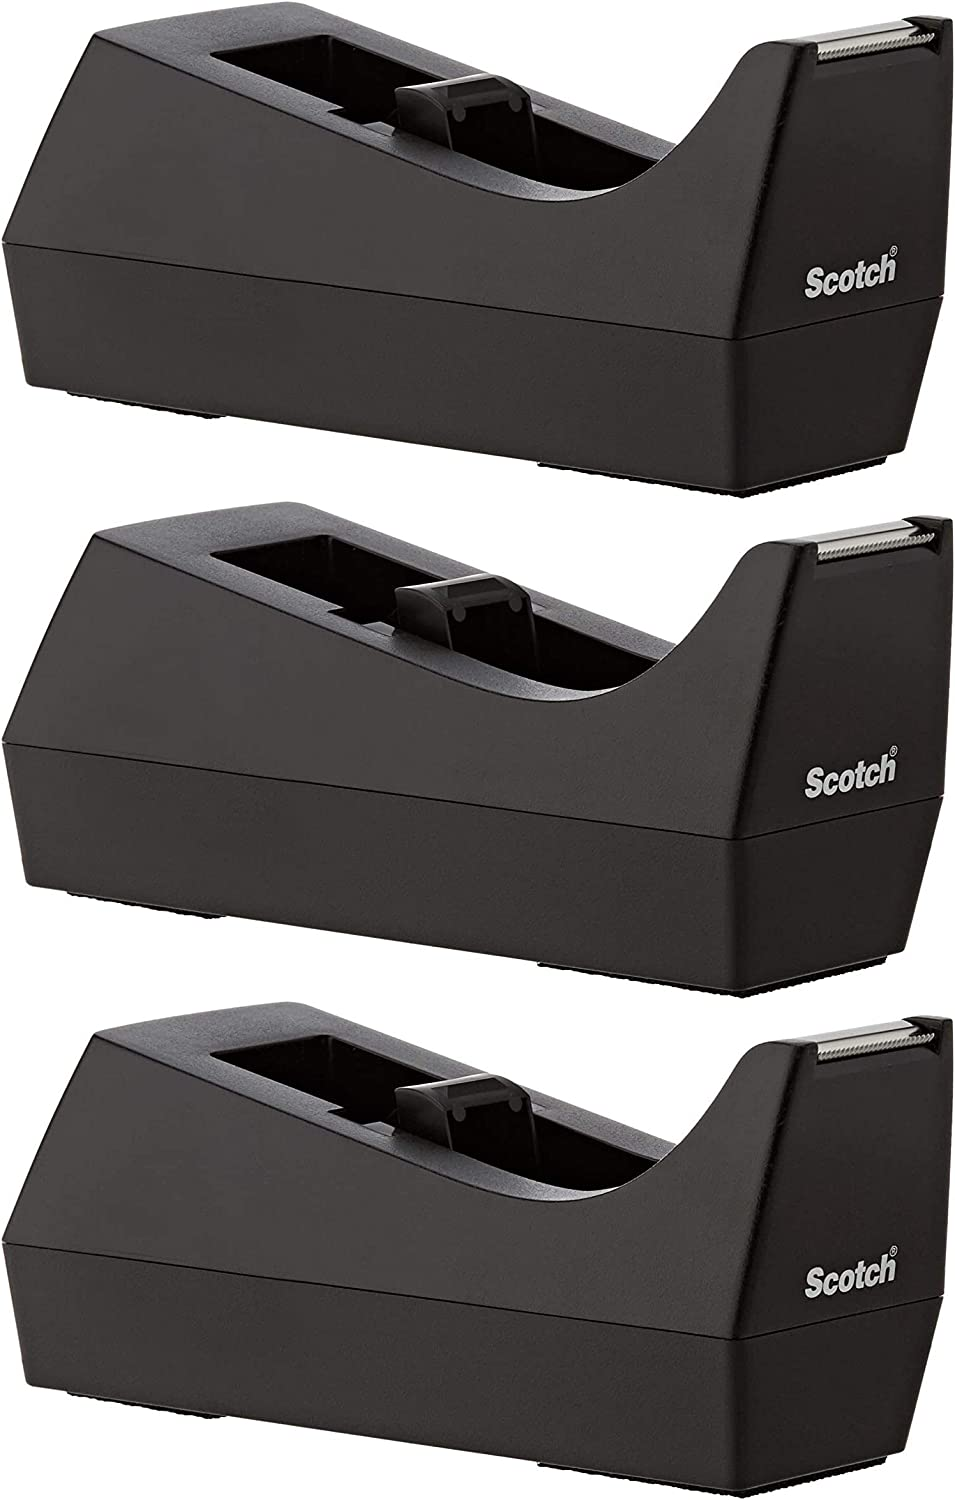 Black ,1 Pack 1 Core Made of 100/% Recycled Plastic 1-Pack Weighted Base Scotch Brand Desktop Tape Dispenser C-38